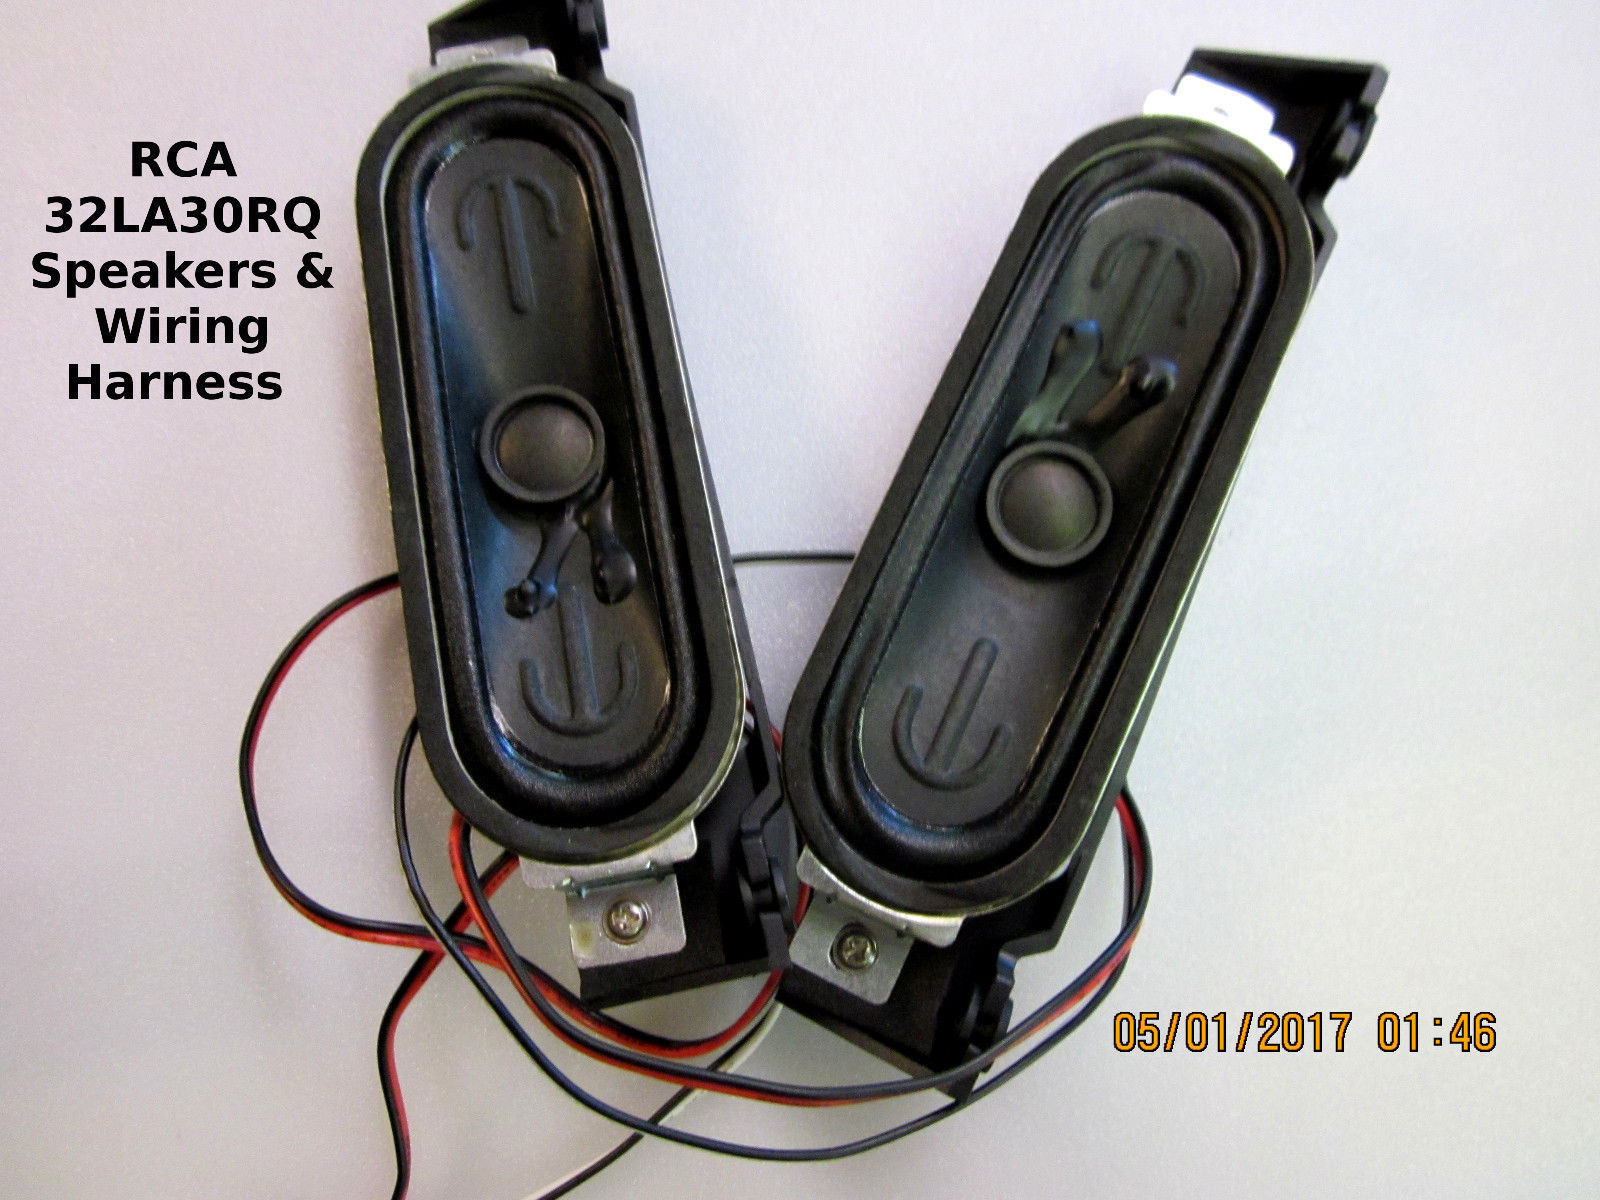 Rca Dvd Player 374 Listings Wiring Harness 32la30rq Speakers 8 Ohms 10 Watts With Mounts 1220